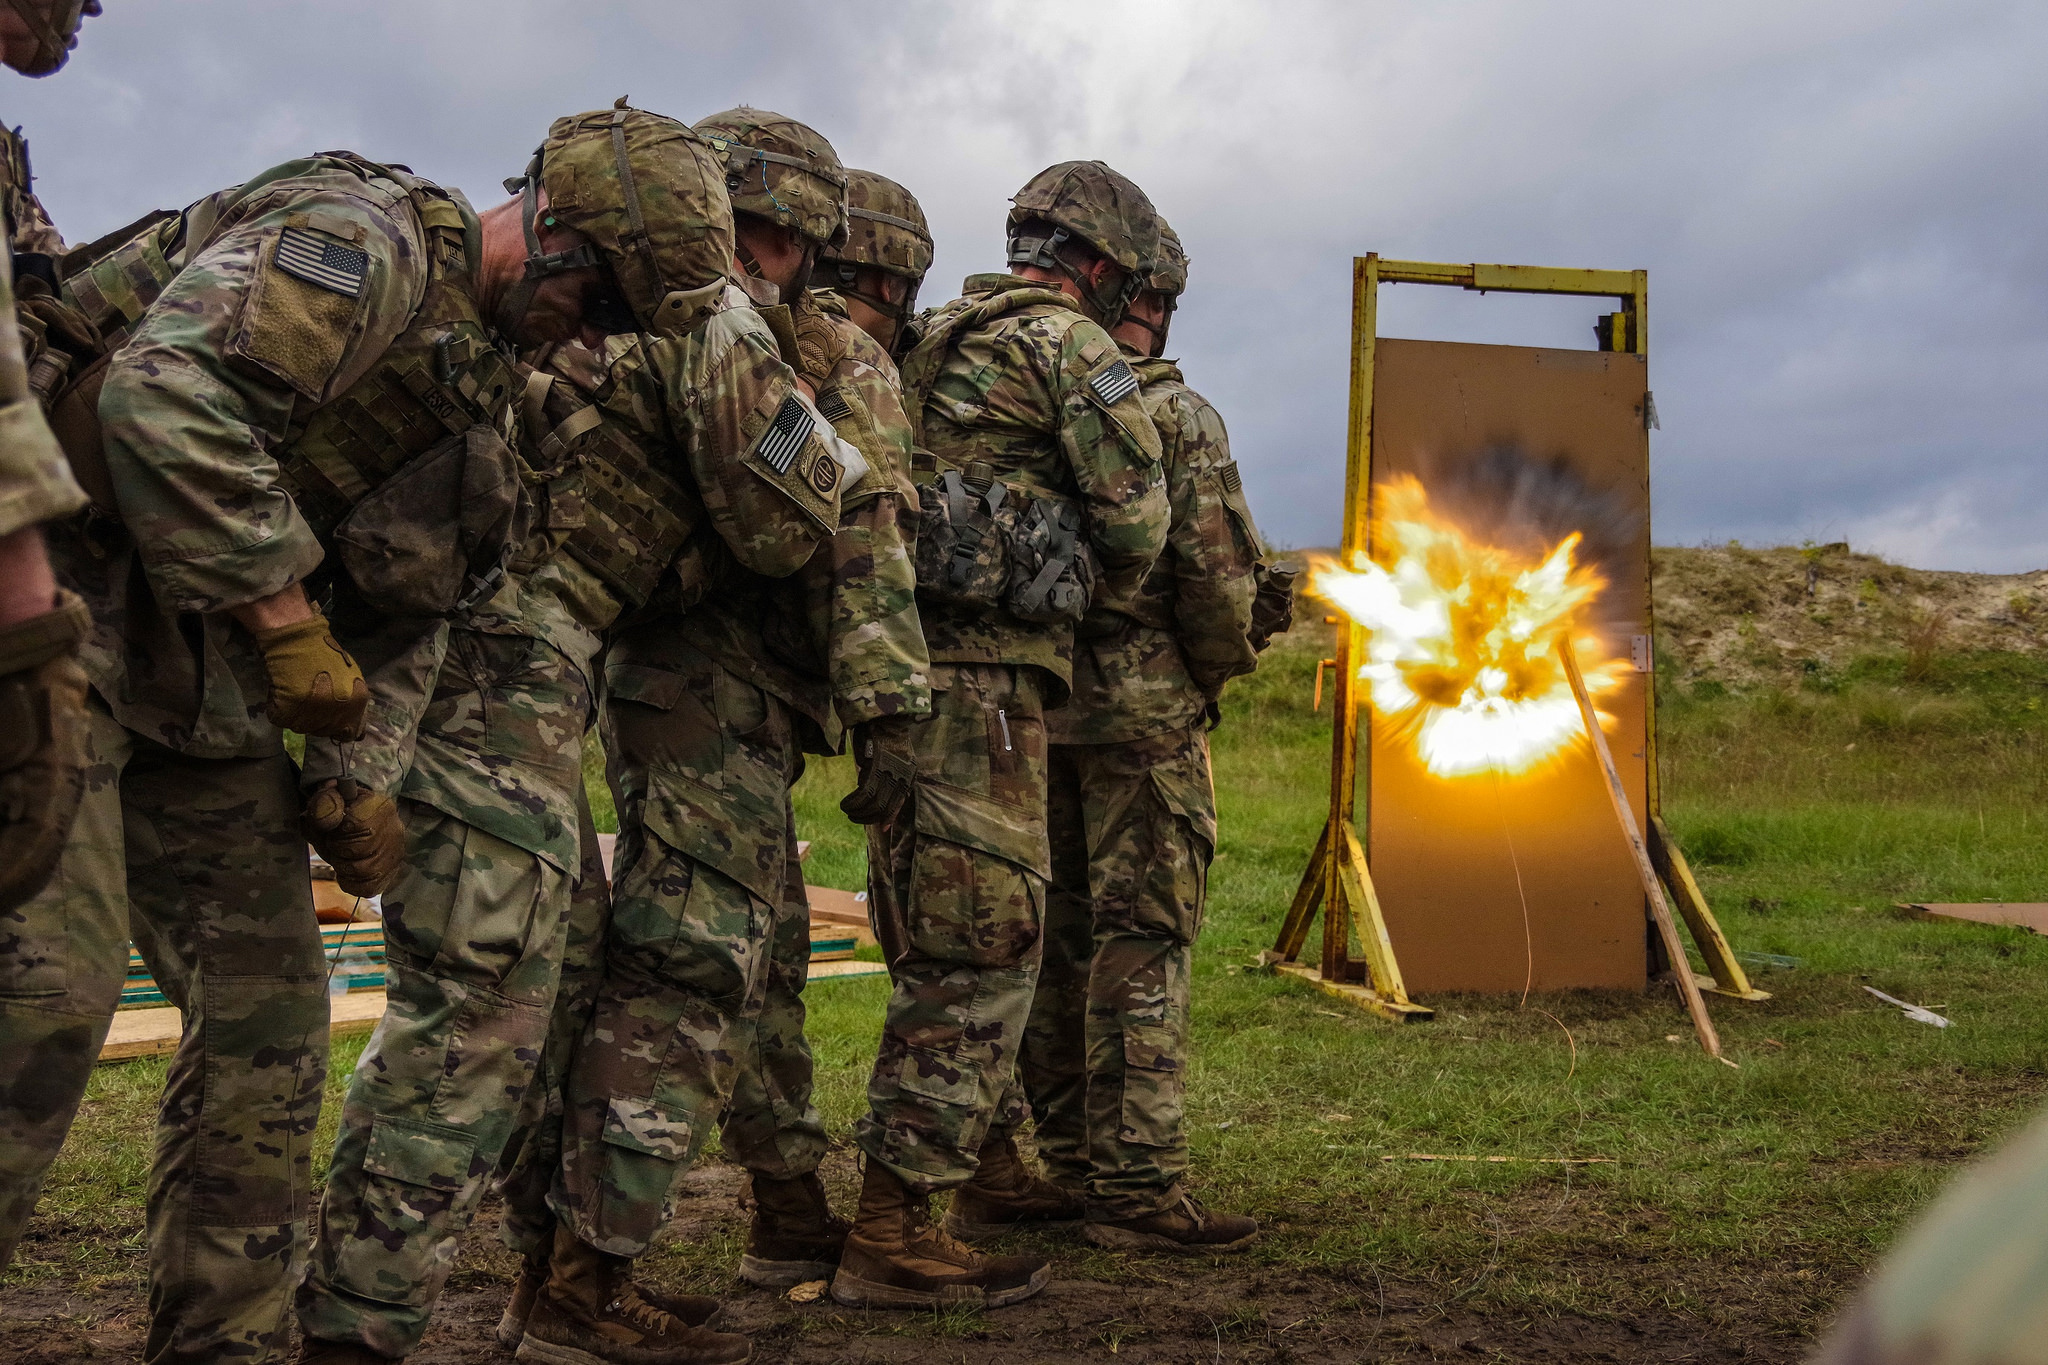 Paratroopers from Company A, 307th Airborne Engineer Battalion, 3rd Brigade Combat Team, 82nd Airborne Division observe as a door-breaching charge they emplaced detonates Nov. 6, 2018, on Fort Bragg, N.C. (Army)